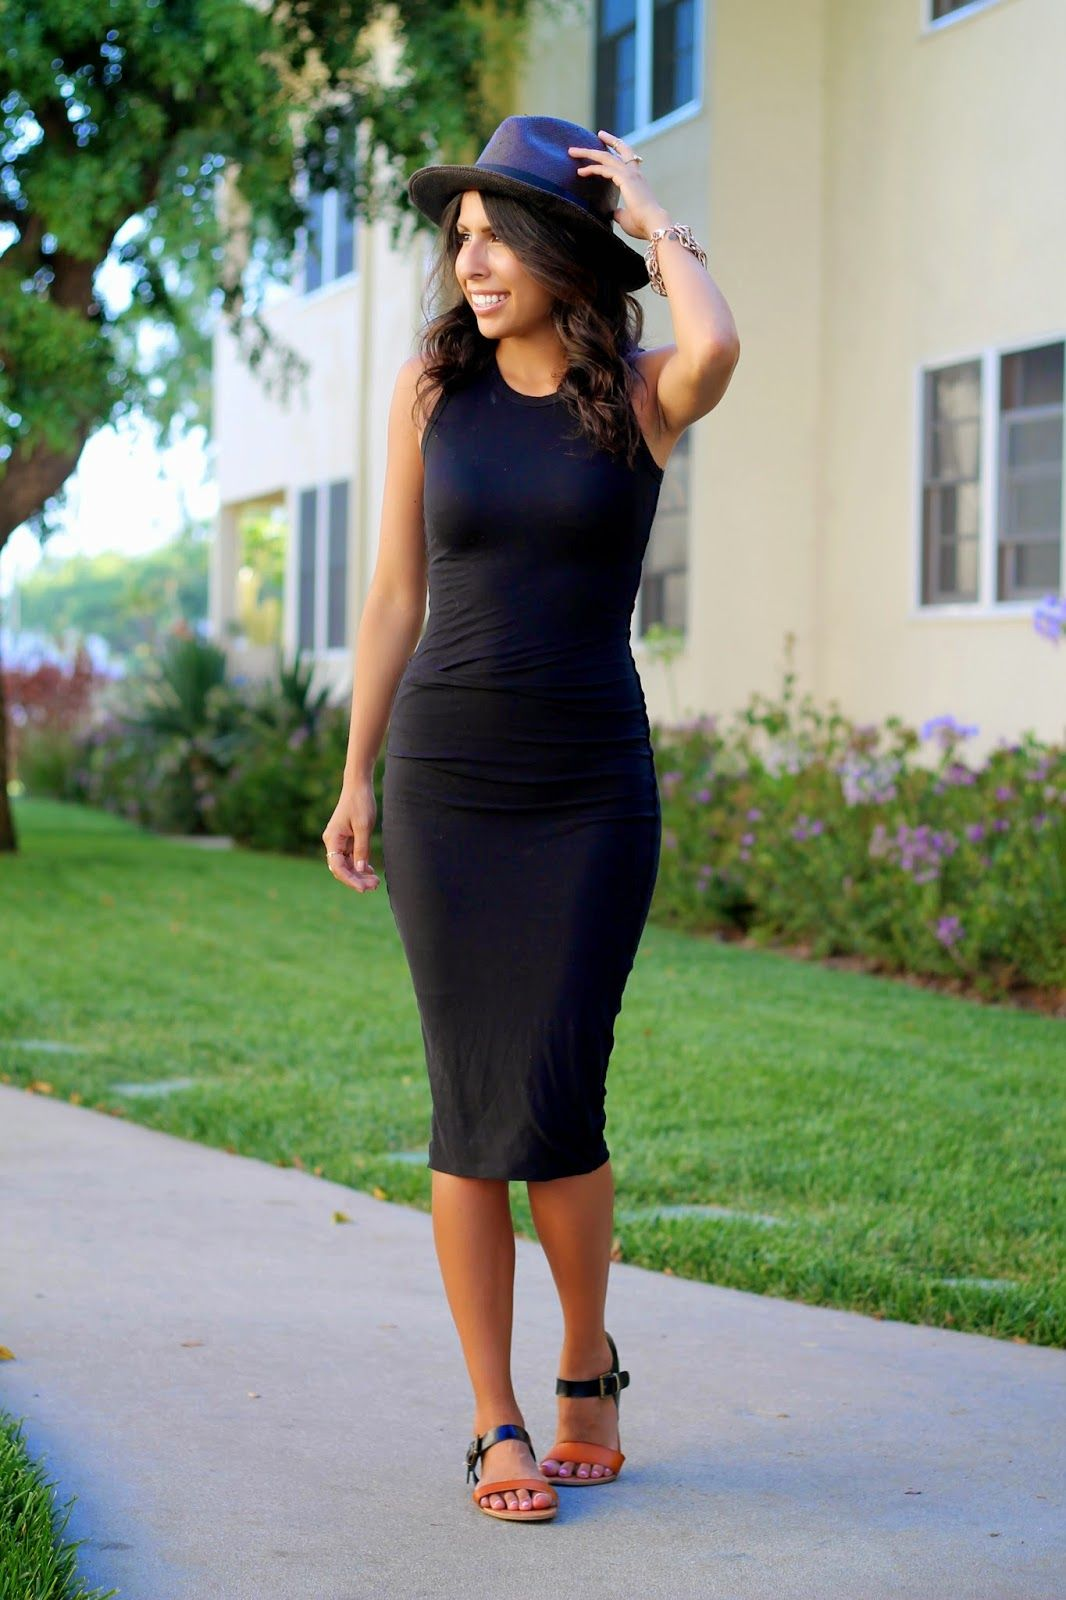 Shoes to wear with black dress in the summer